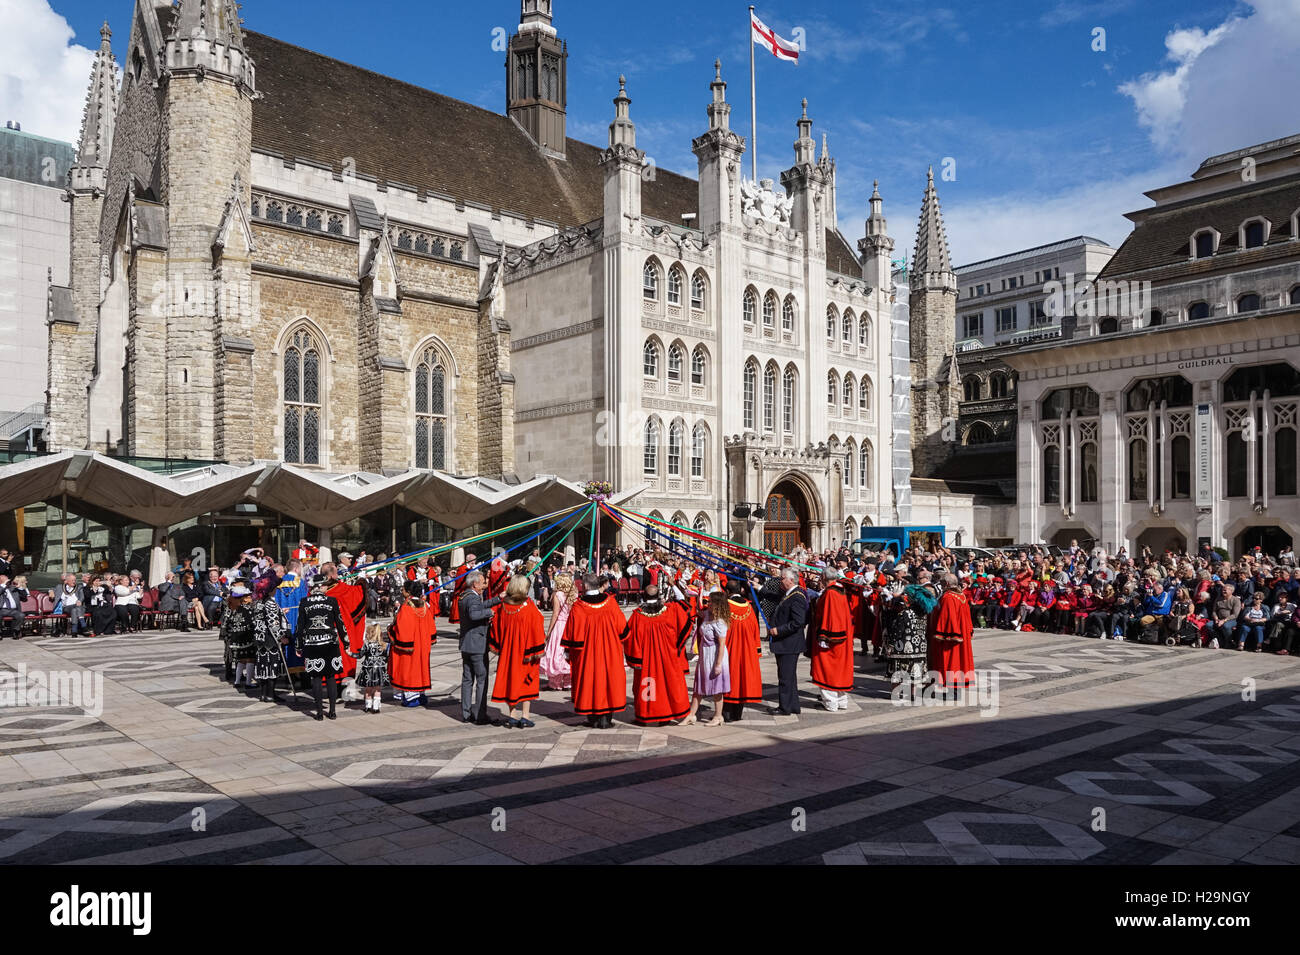 Pearly Kings and Queens Harvest Festival at Guildhall Yard, London England United Kingdom UK - Stock Image